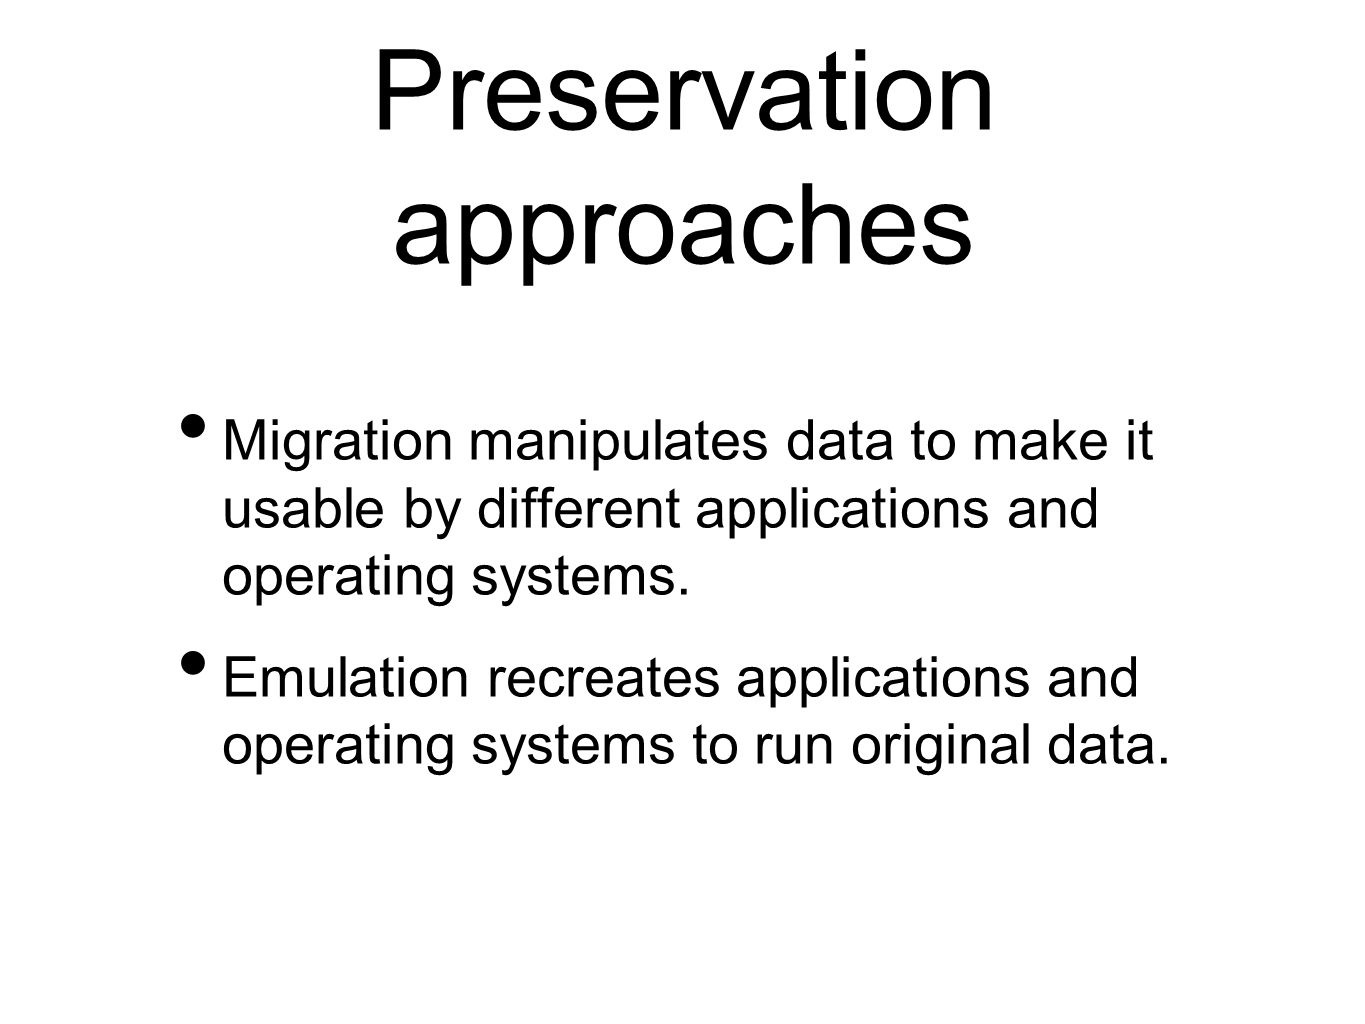 Preservation approaches Migration manipulates data to make it usable by different applications and operating systems.